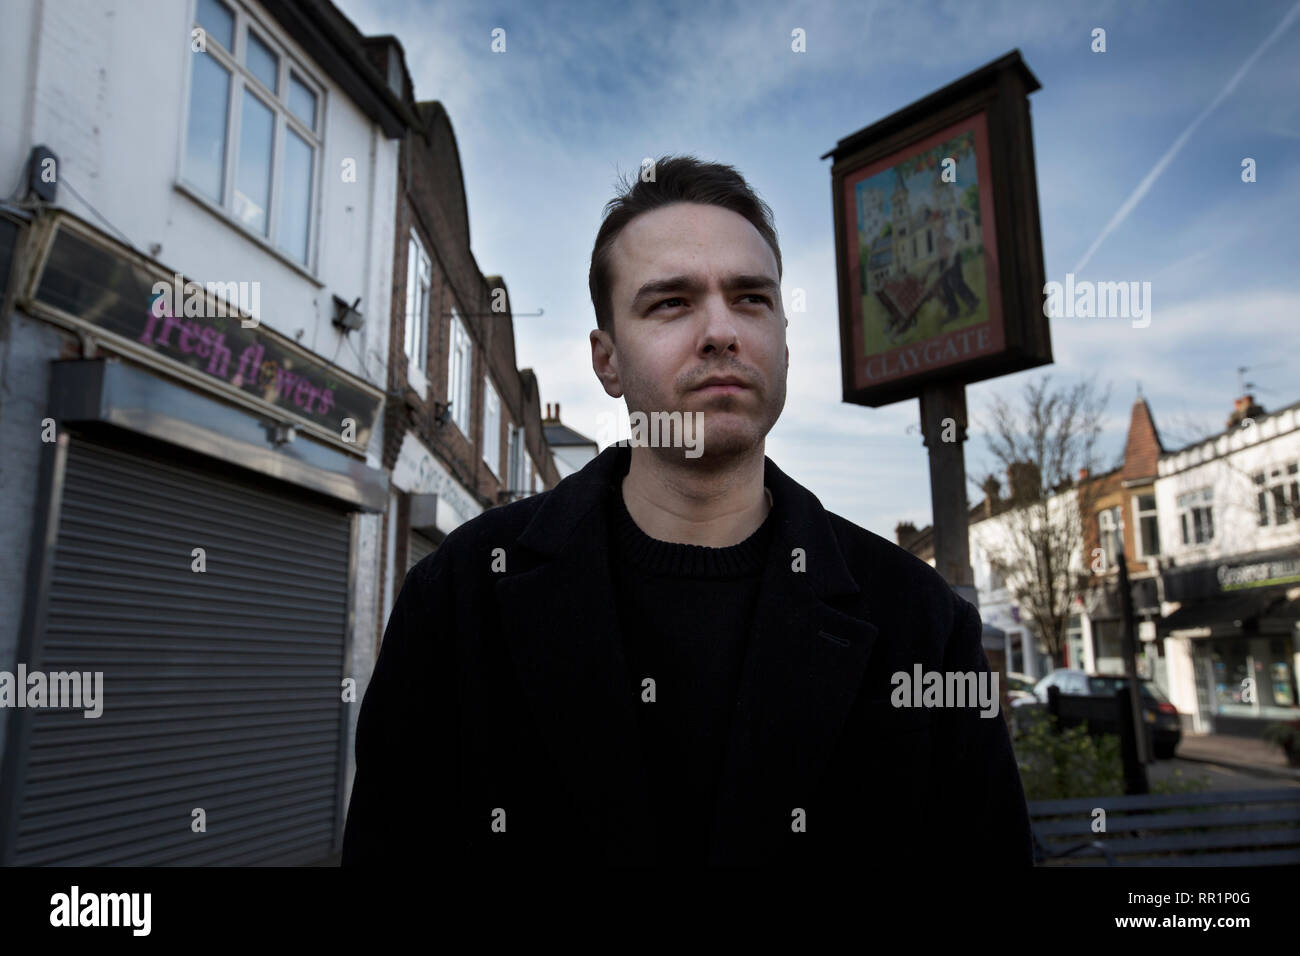 David Challen son of Sally Challen, campaigning for her release following the successful appeal for the murder in 2011 of her husband Richard. - Stock Image